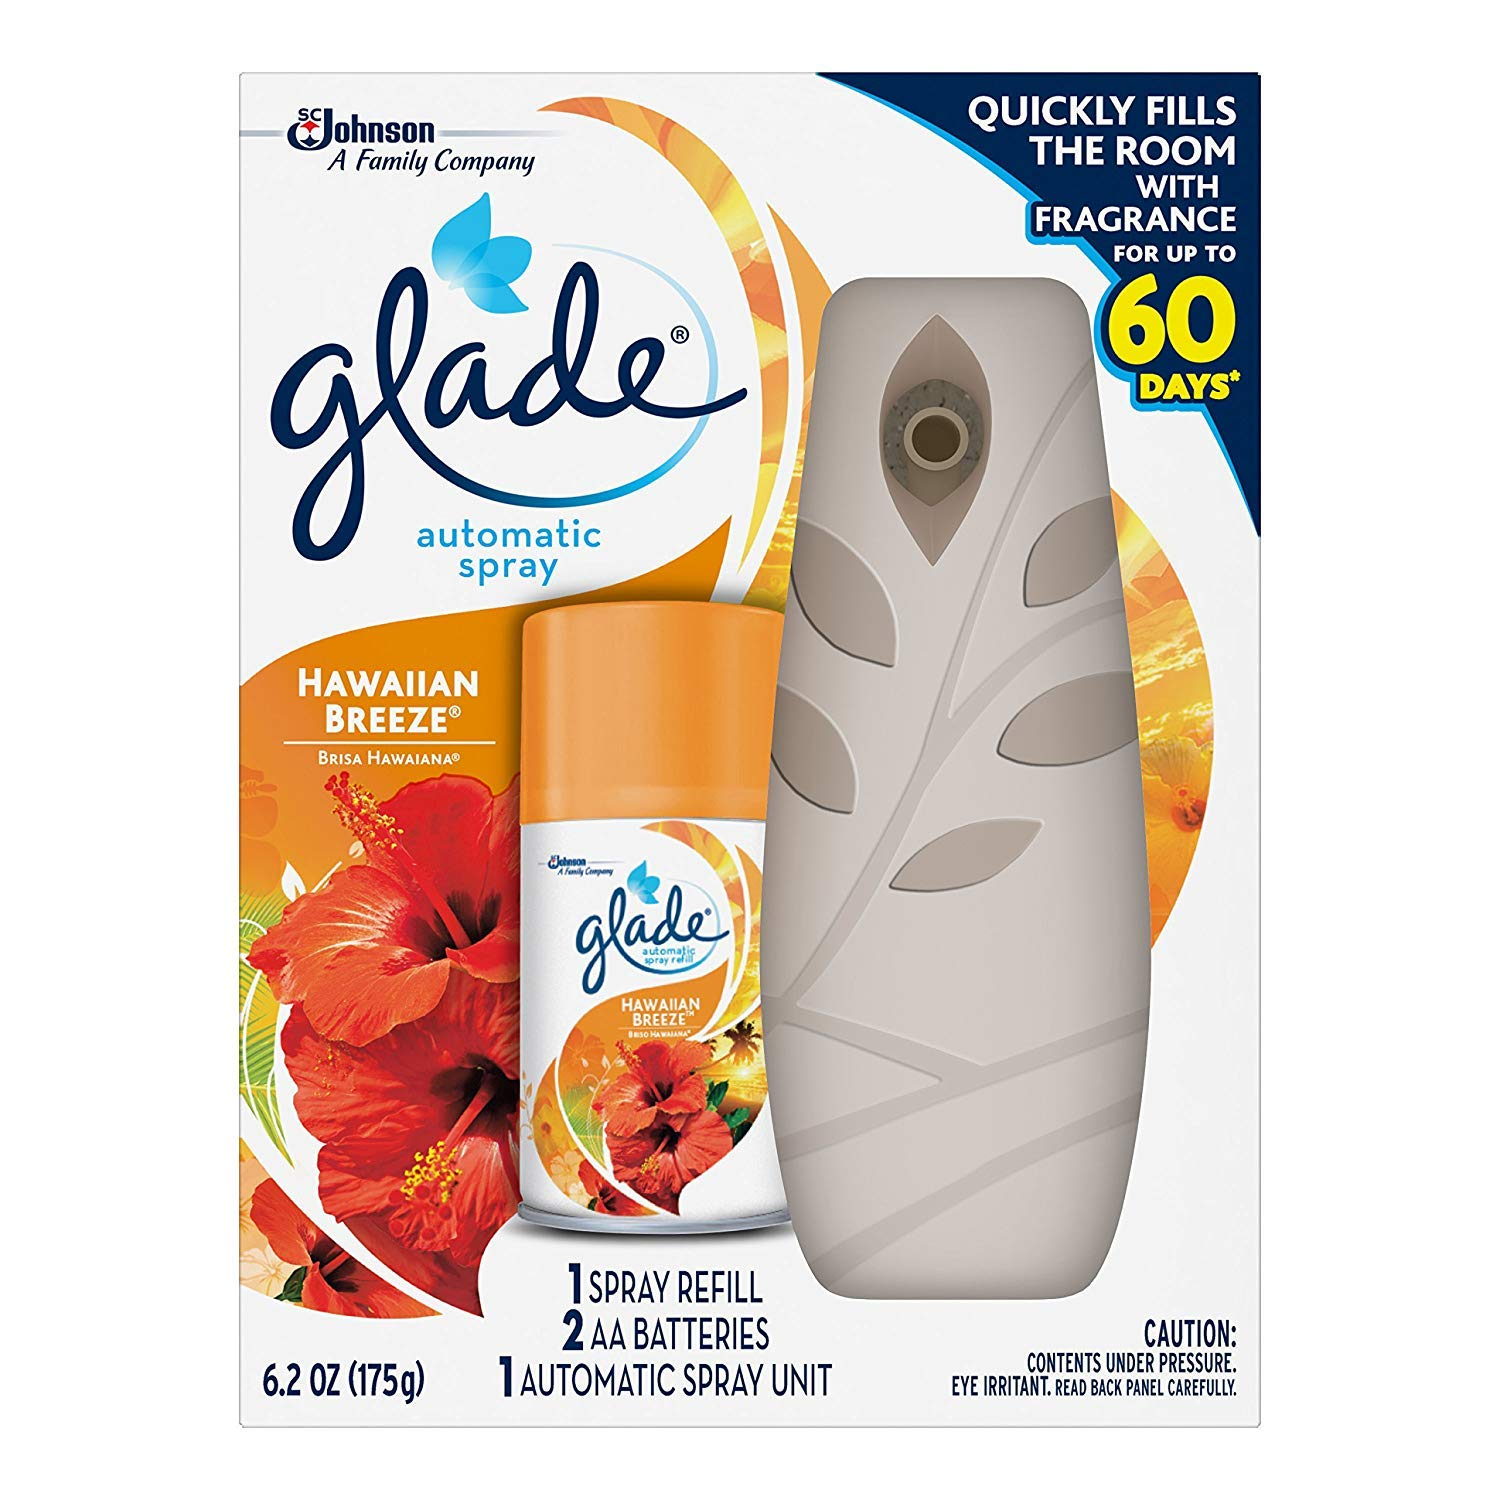 Glade Automatic Spray Air Freshener Starter Kit, 6.2 oz (Hawaiian Breeze, Pack - 3)